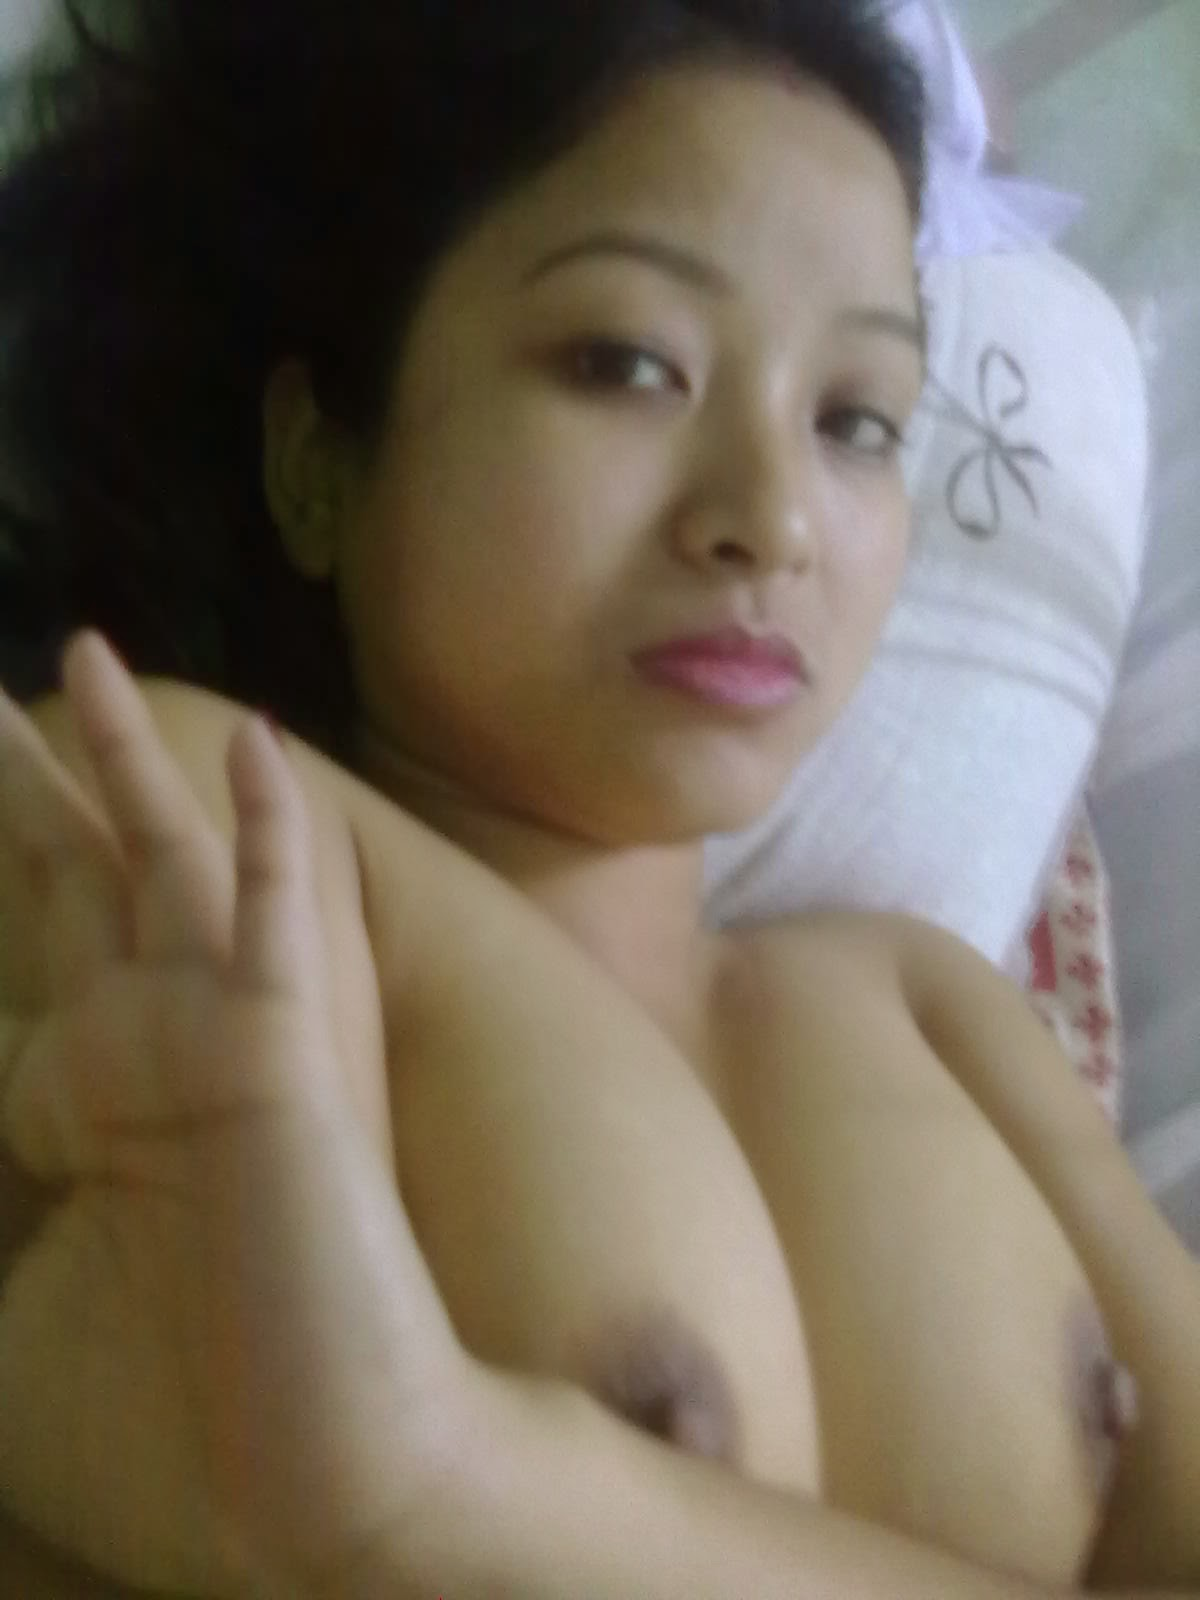 Naked Assamese Girl With Big Boobs  Assamese Sex Stories-1759